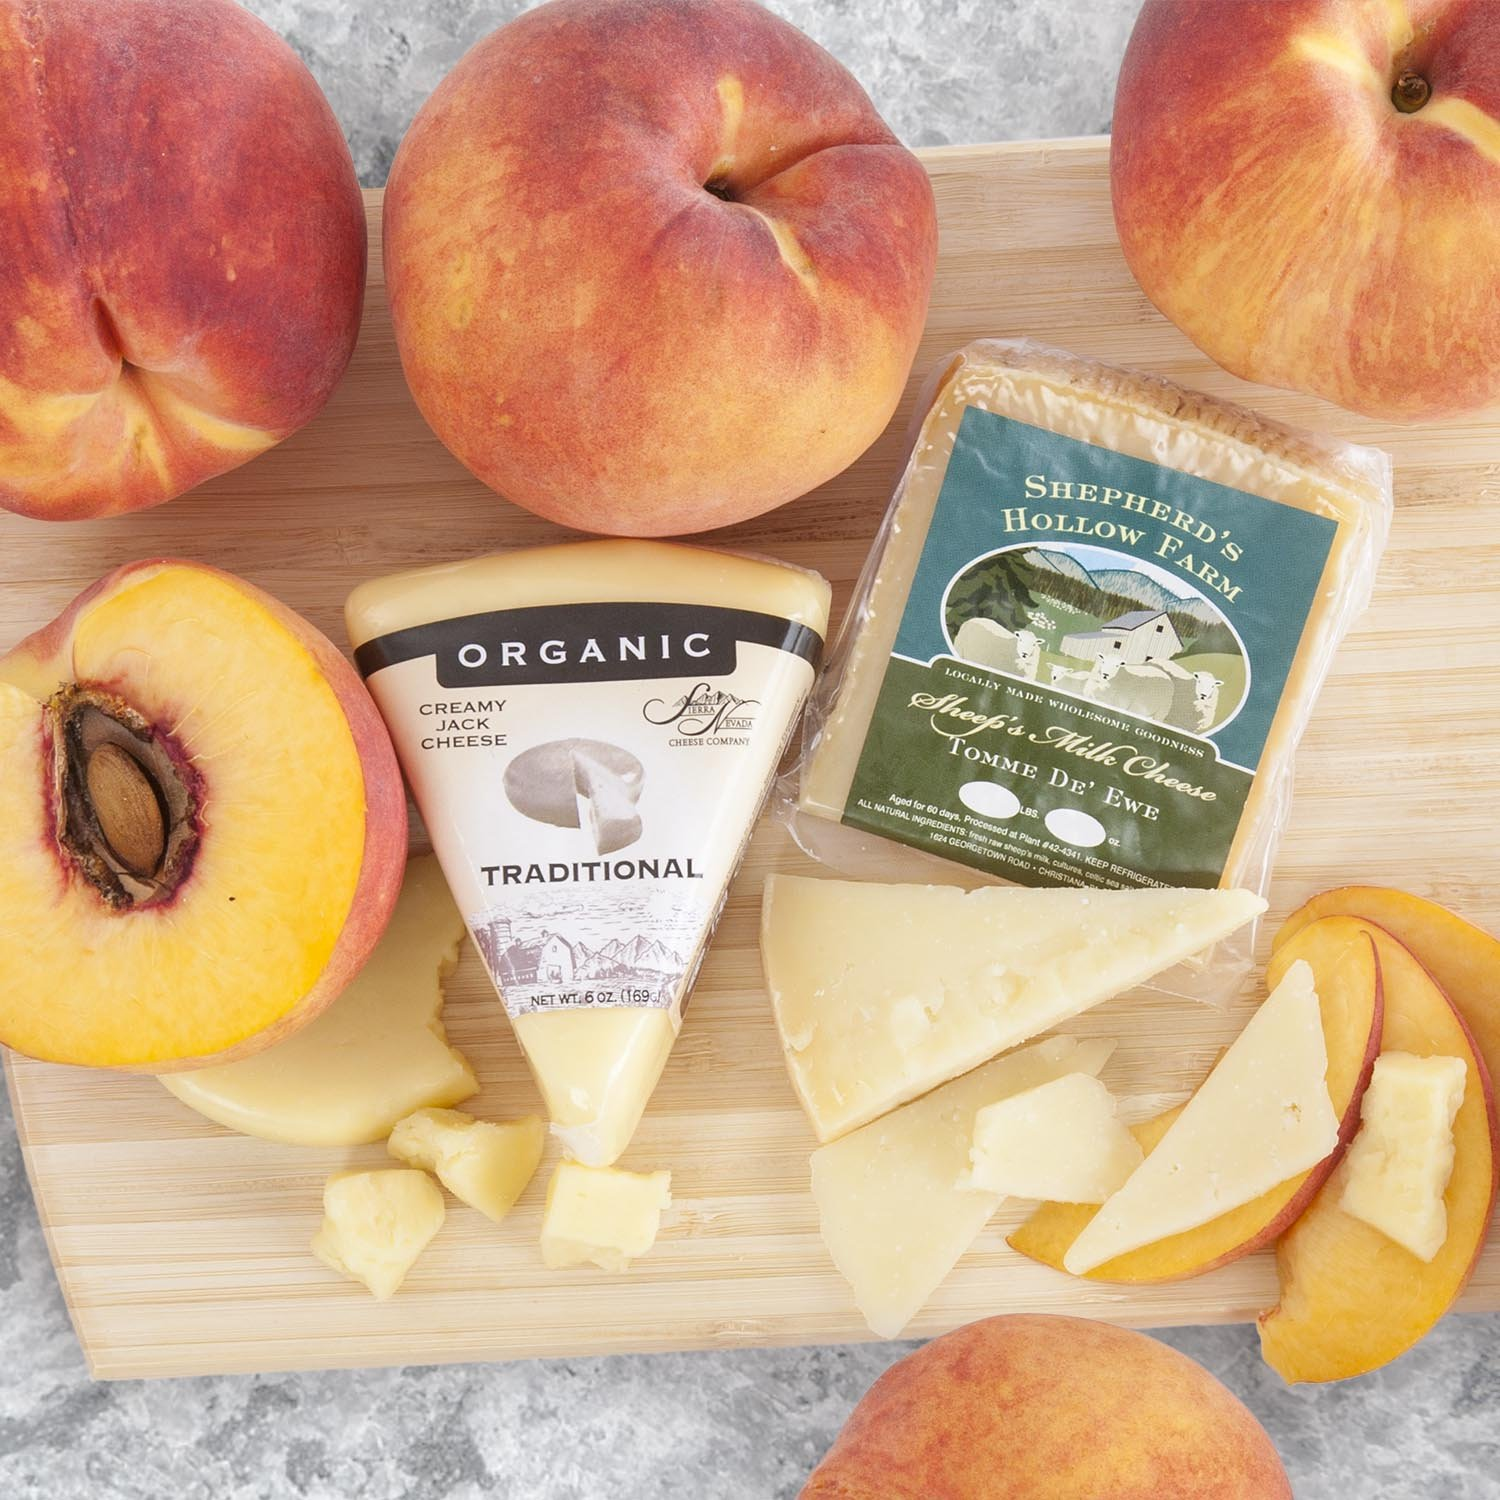 Golden State Fruit Monthly Fruit and Cheese Club (Premium Version) - 3 Month Club by Golden State Fruit (Image #3)